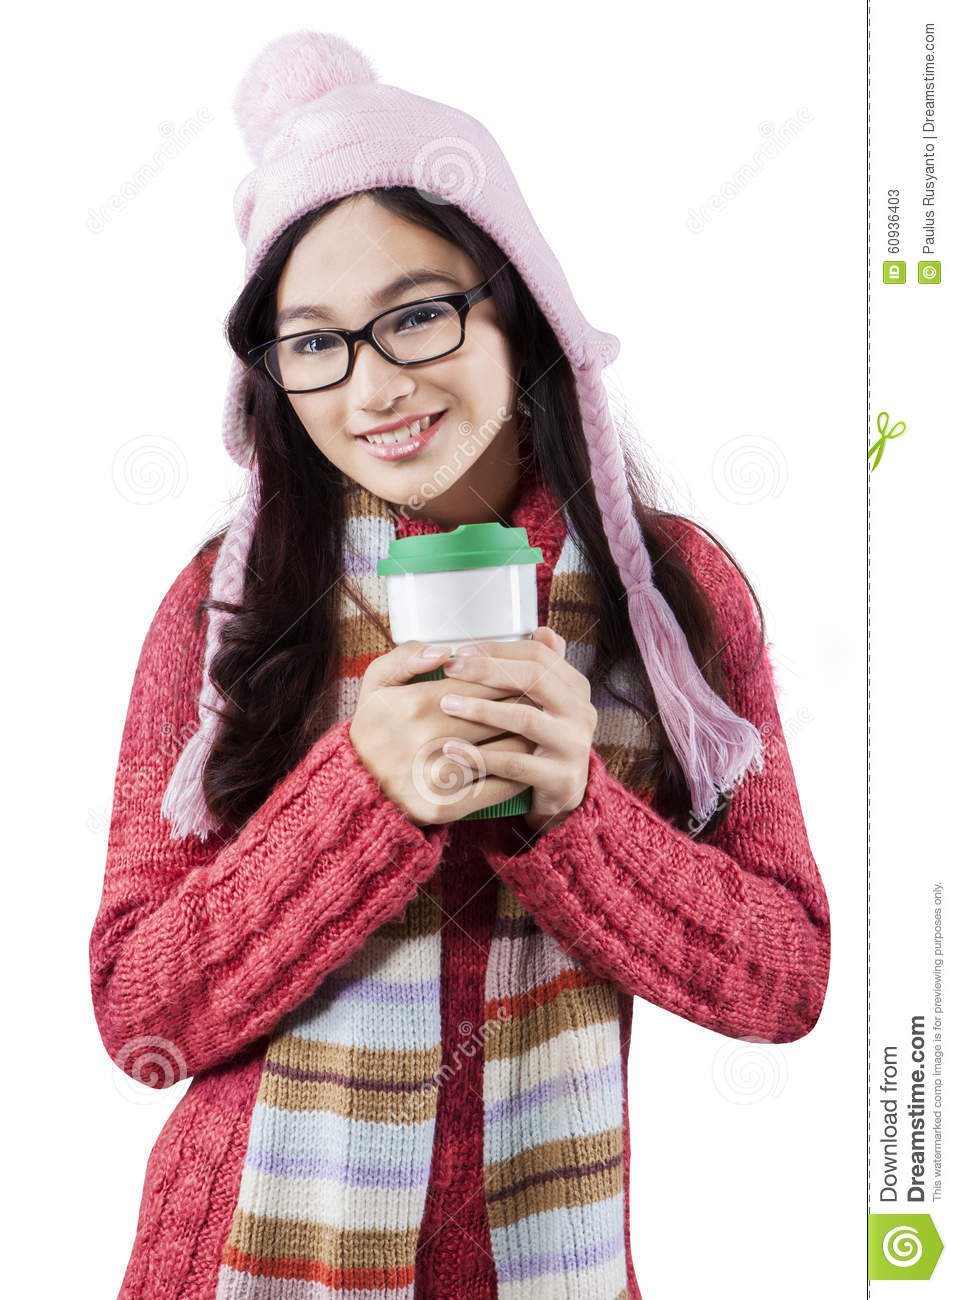 f24574cb3 Portrait of teenage girl wearing winter wear, smiling at the camera while  holding a cup of hot drink